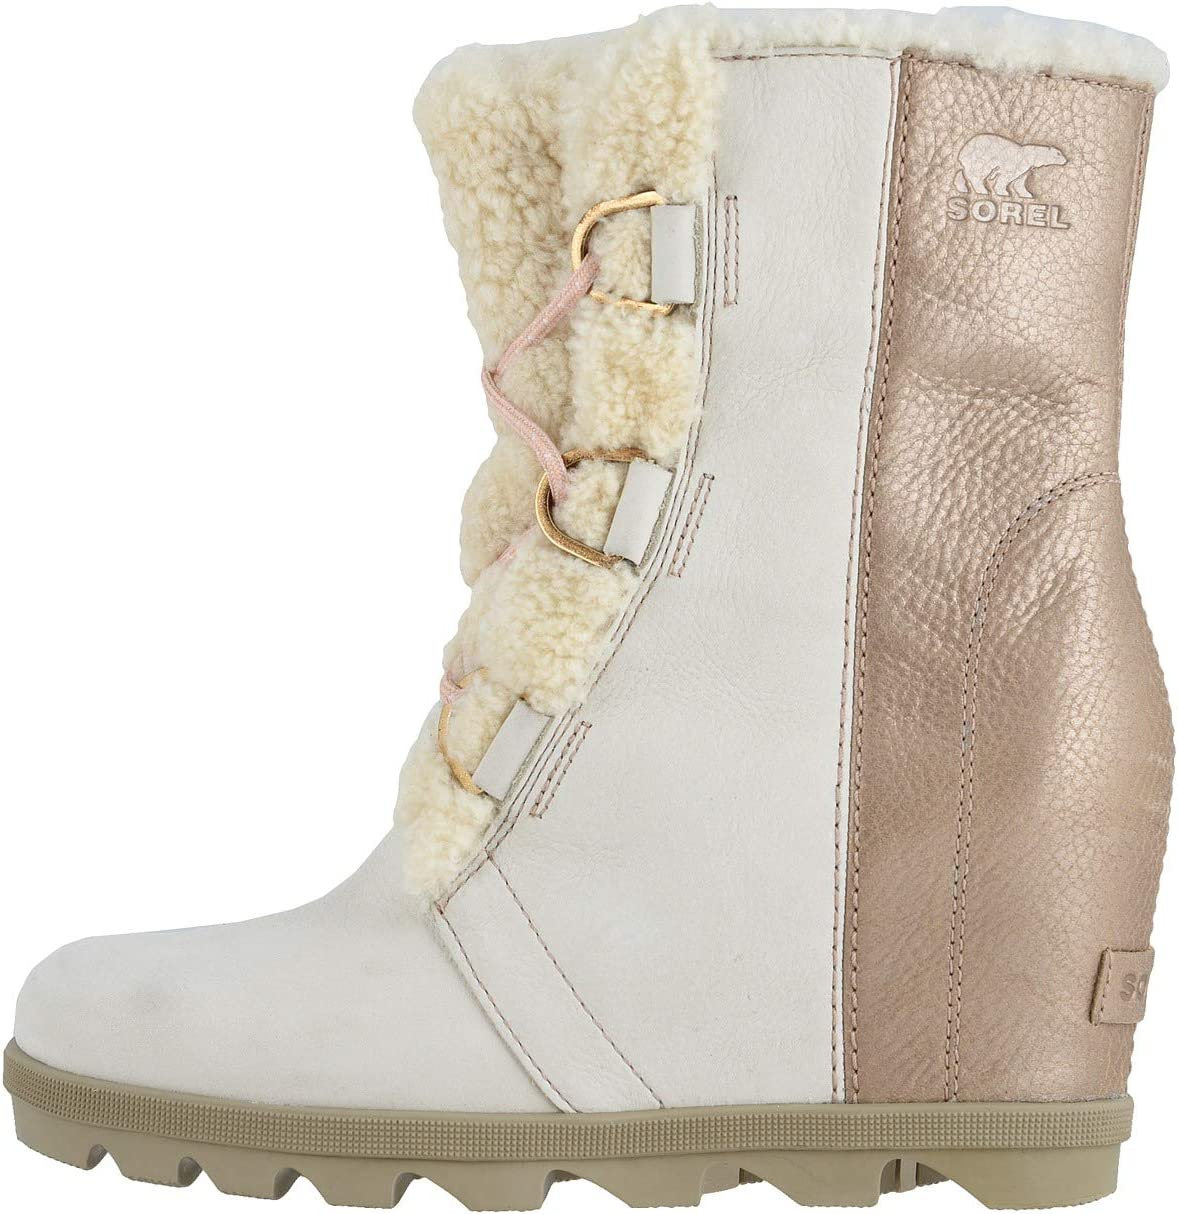 SOREL Joan of Arctic™ Wedge II Lux | Women's shoes | 2020 Newest